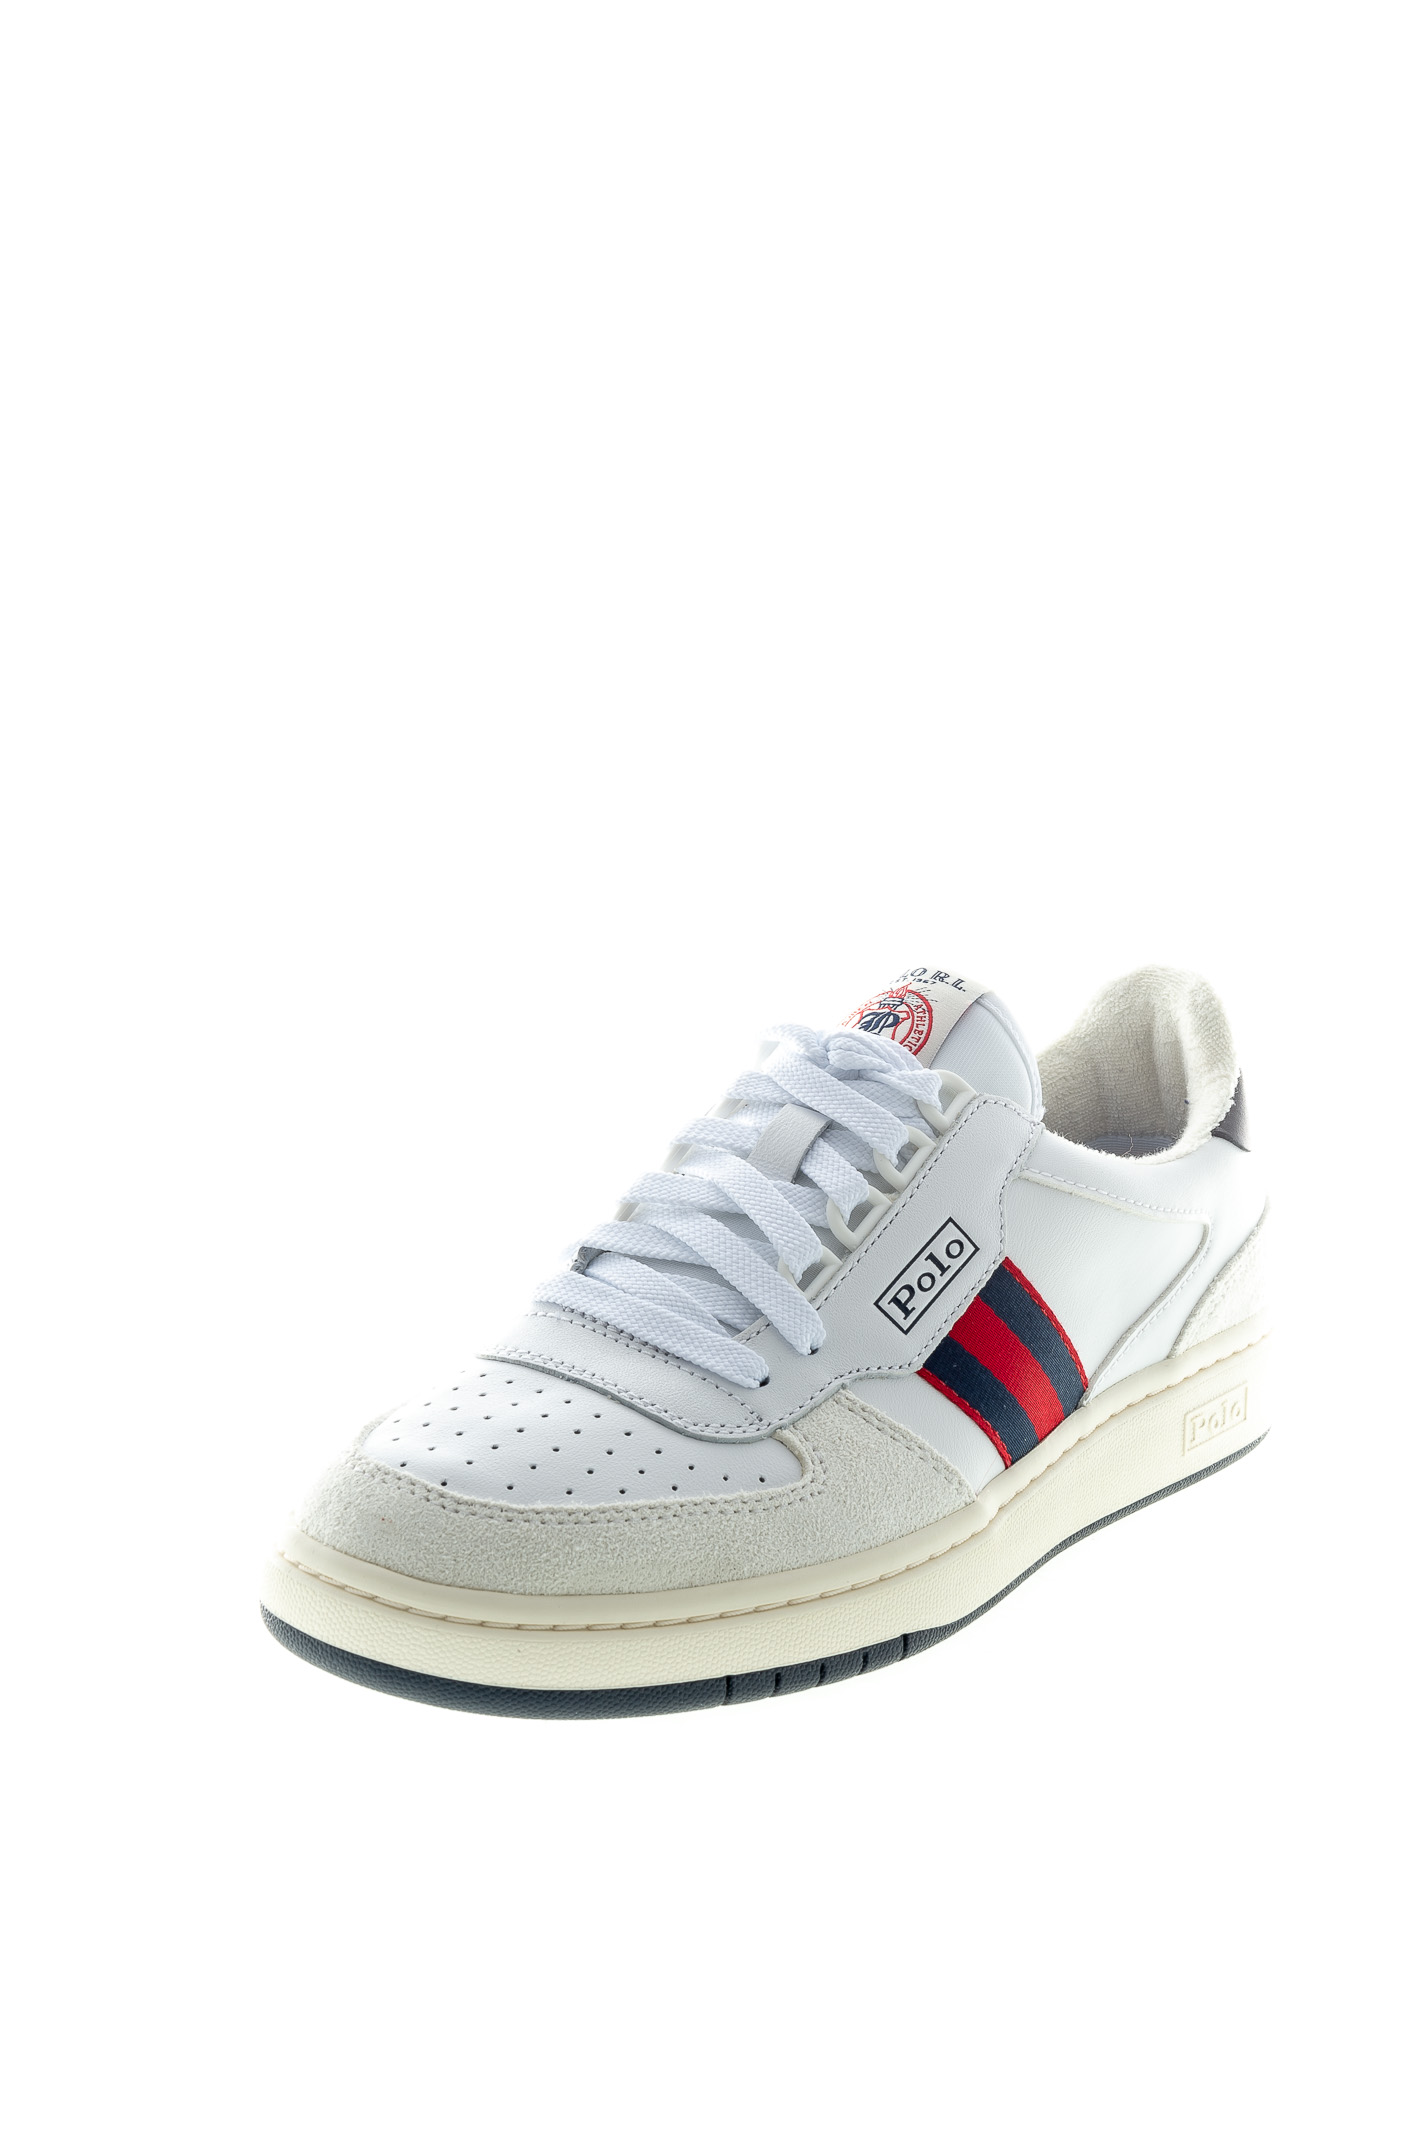 809784401POLO COUT-001